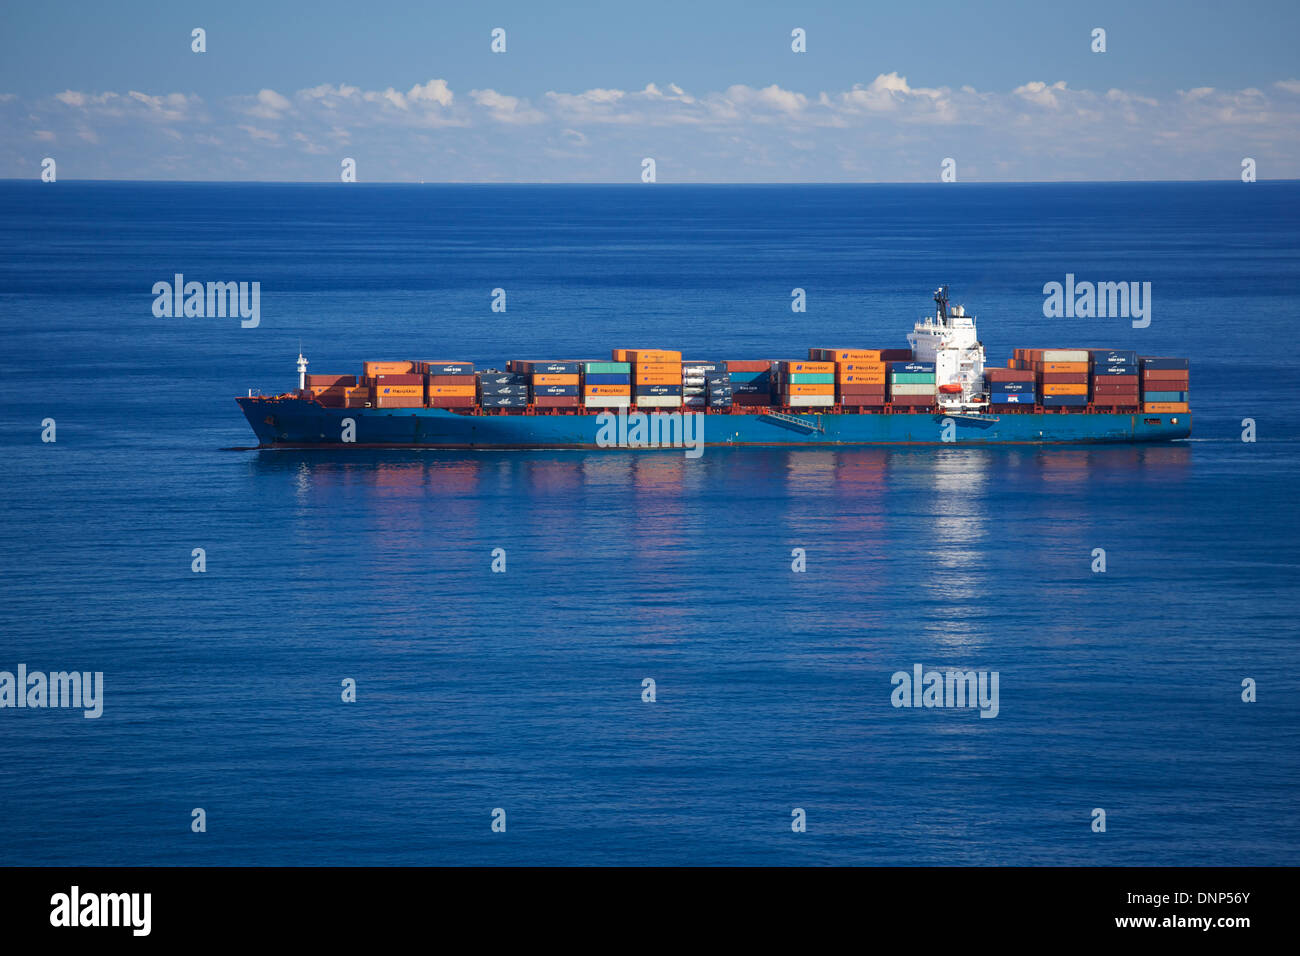 Container ship in the Atlantic Ocean off the island of Madeira - Stock Image